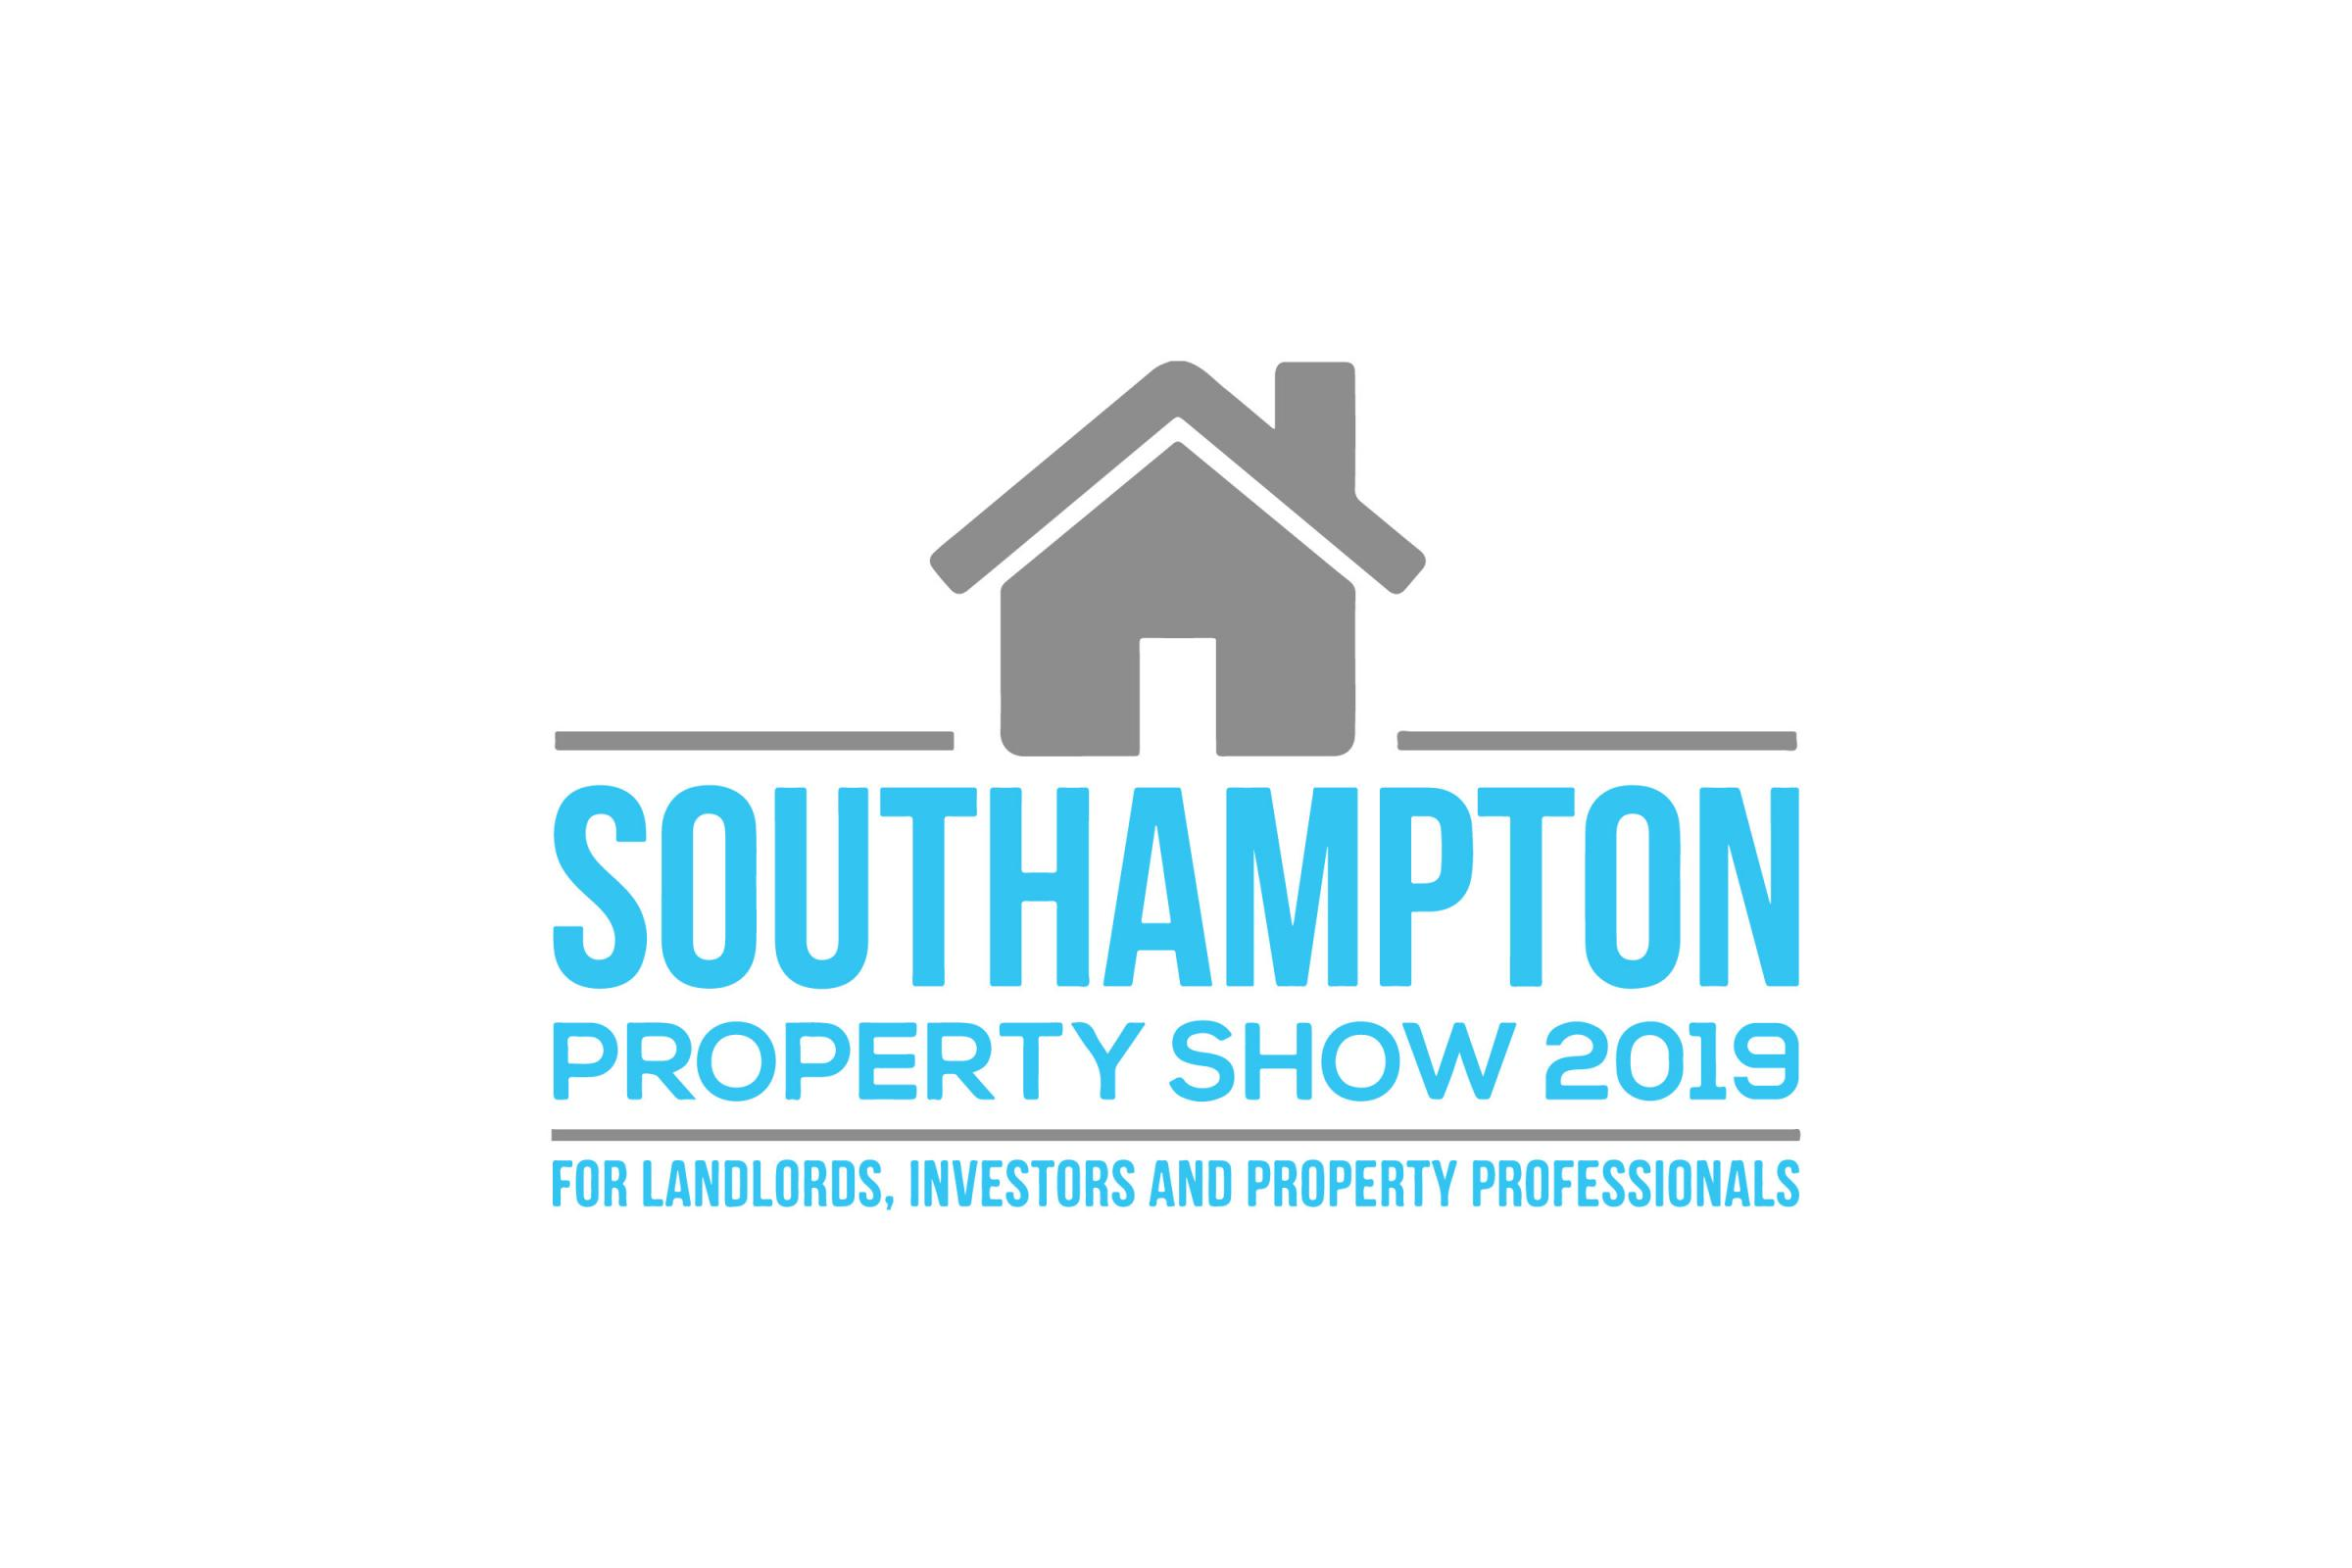 The Southampton Property Show 2019